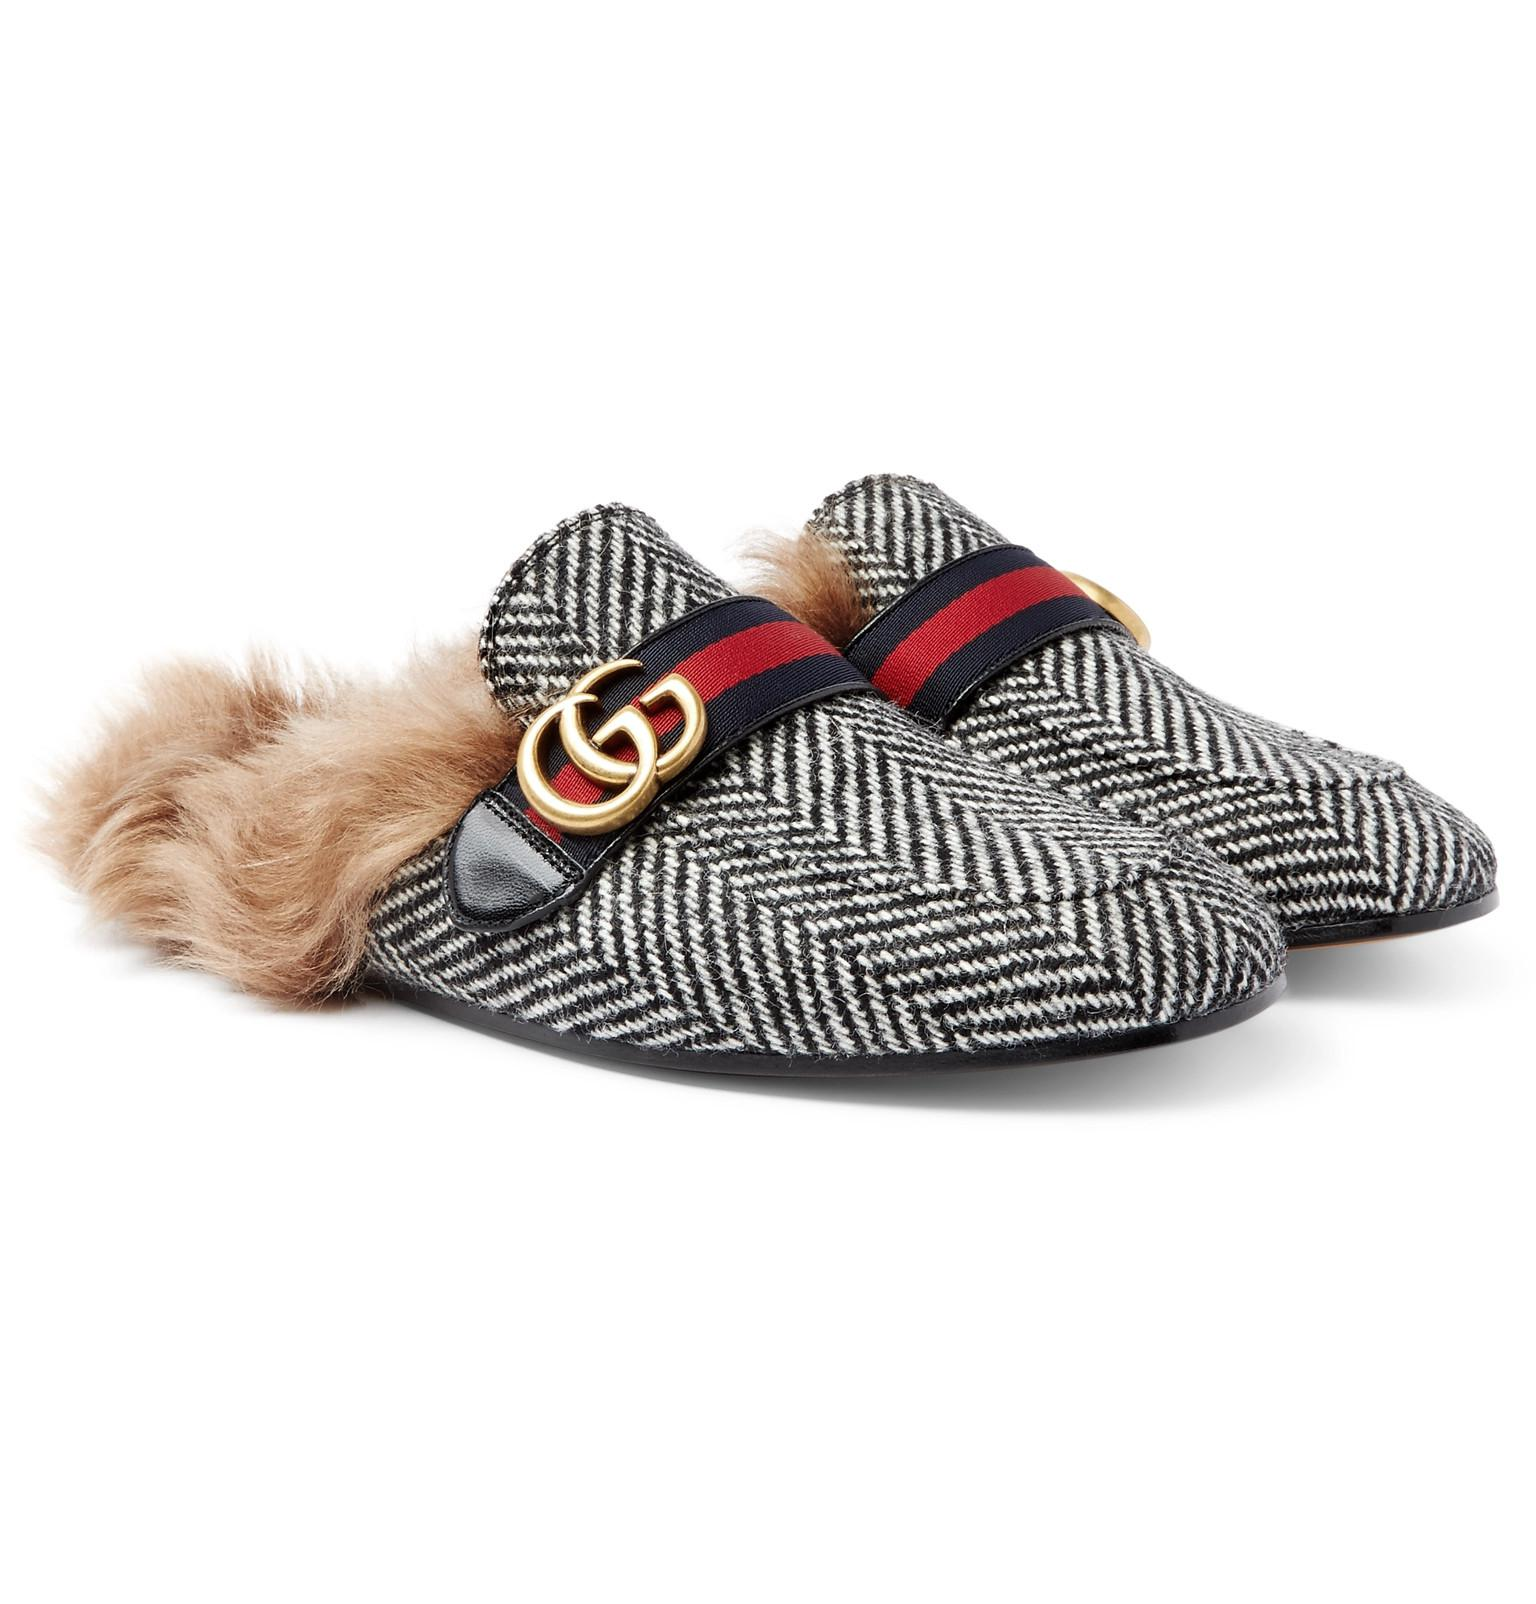 c04619cc1a6 Gucci Princetown Shearling-lined Herringbone Wool Backless Loafers ...